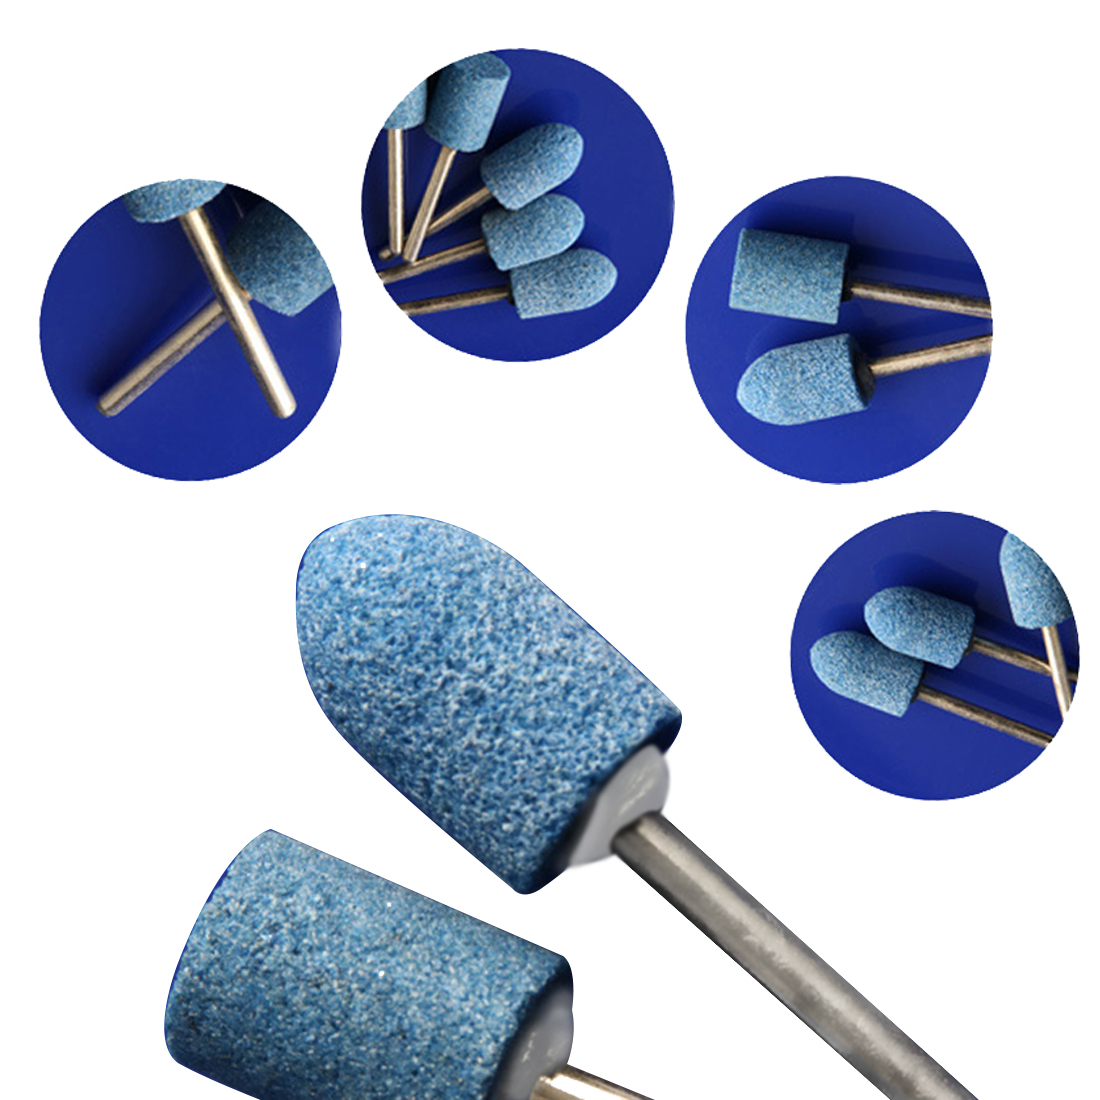 Image 2 - 10PC Abrasive Mounted Stone Cylindrical For Dremel 3000 4000 Rotary Tools Grinding Stone Wheel Head Bule-in Abrasive Tools from Tools